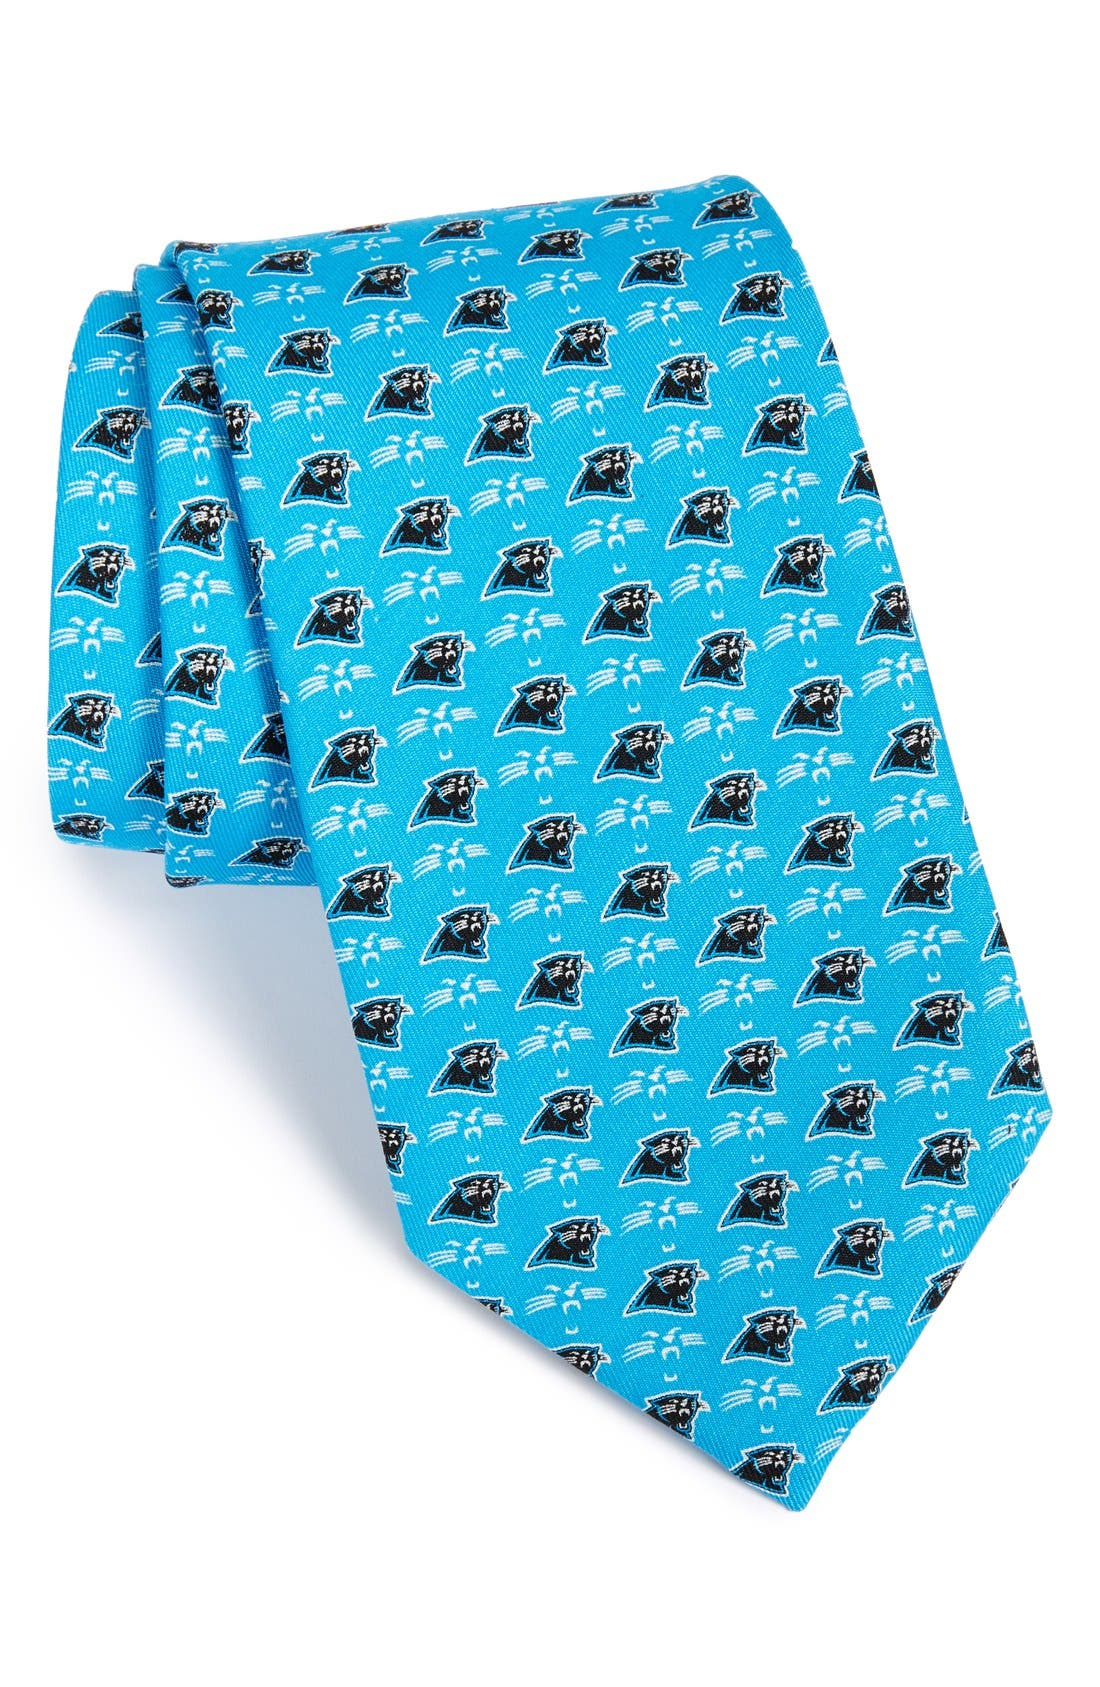 Carolina Panthers - NFL Woven Silk Tie,                         Main,                         color, 453